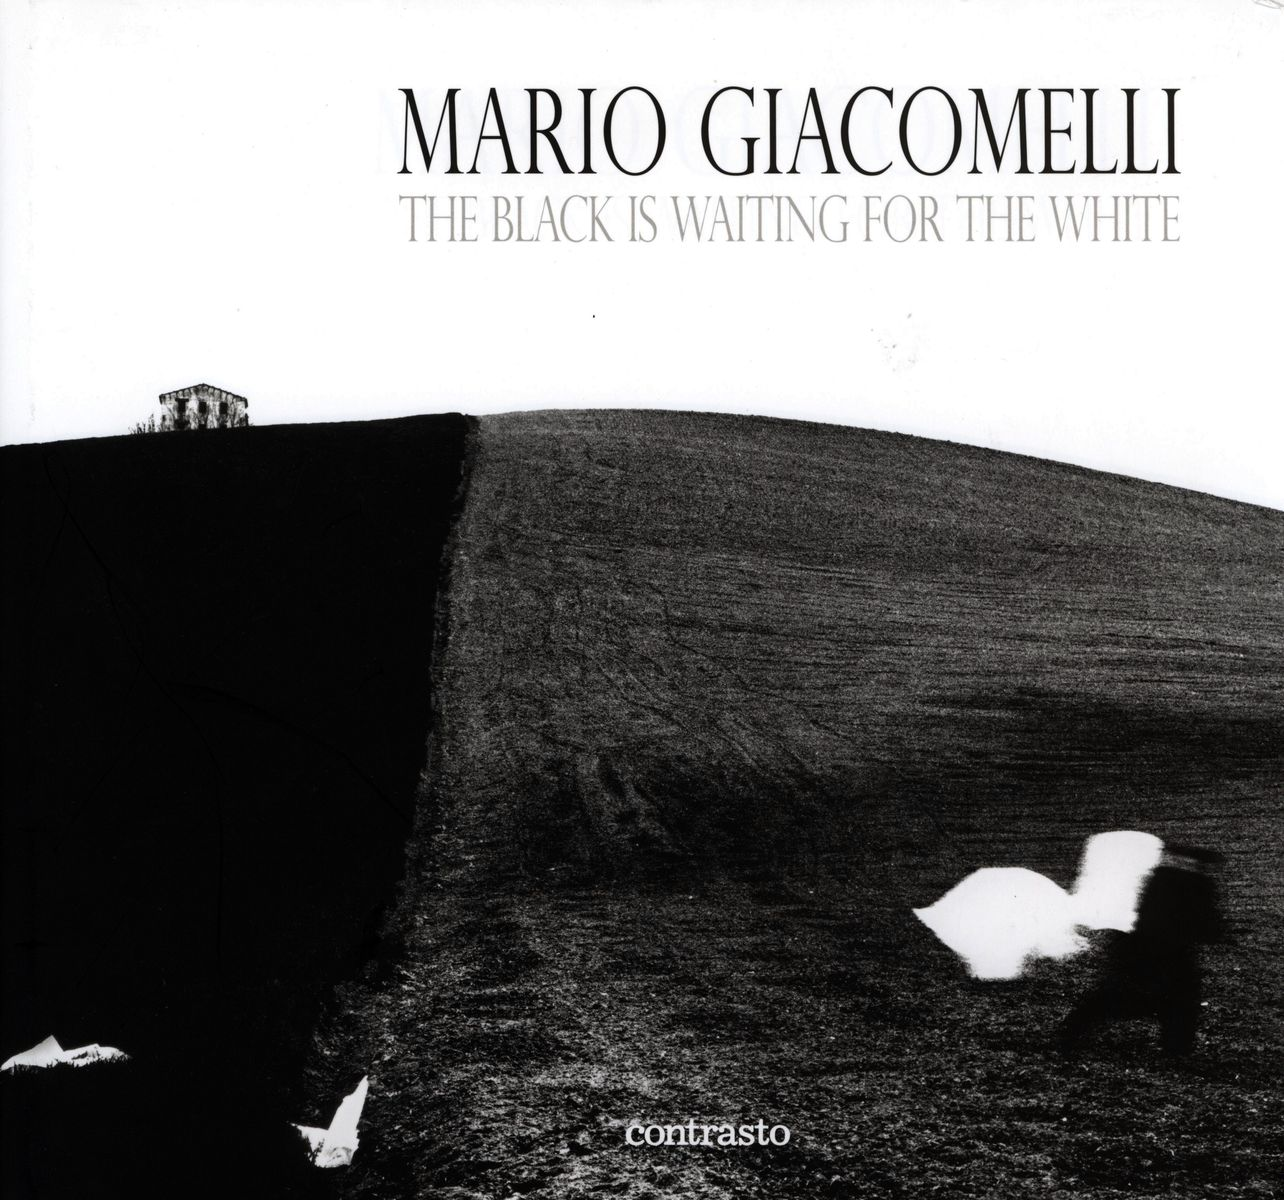 Mario Giacomelli Photographs. The Black is waiting. по 1 500.00 руб от ScrapBerry's,США